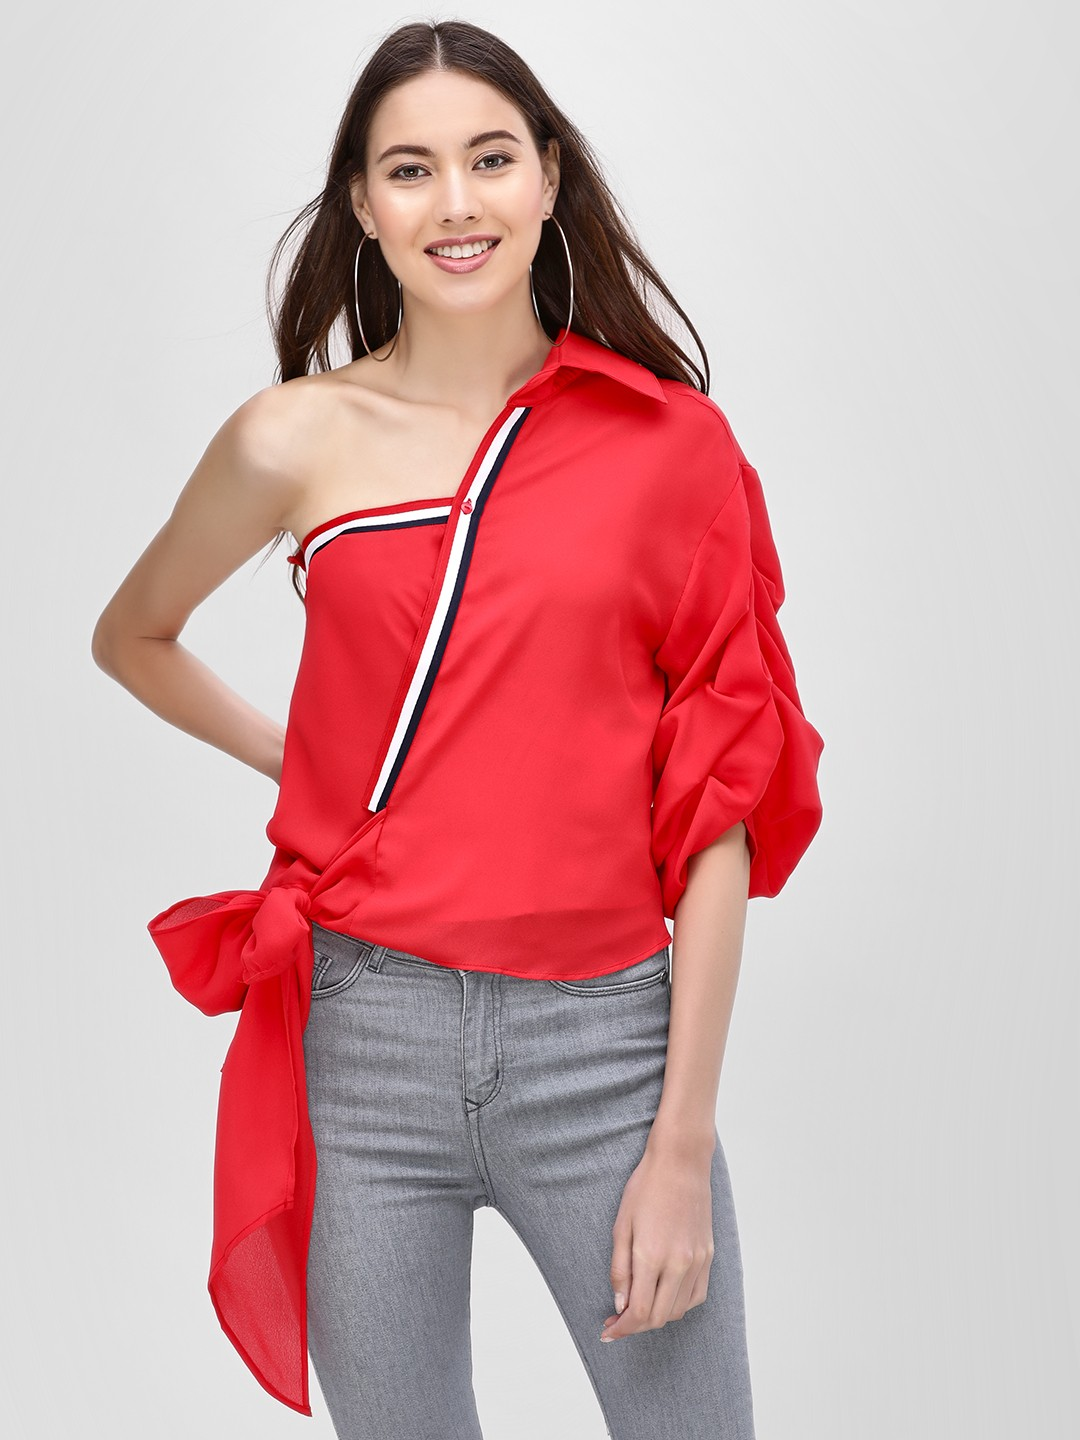 Ri-Dress Red One Shoulder Blouse With Stripe 1